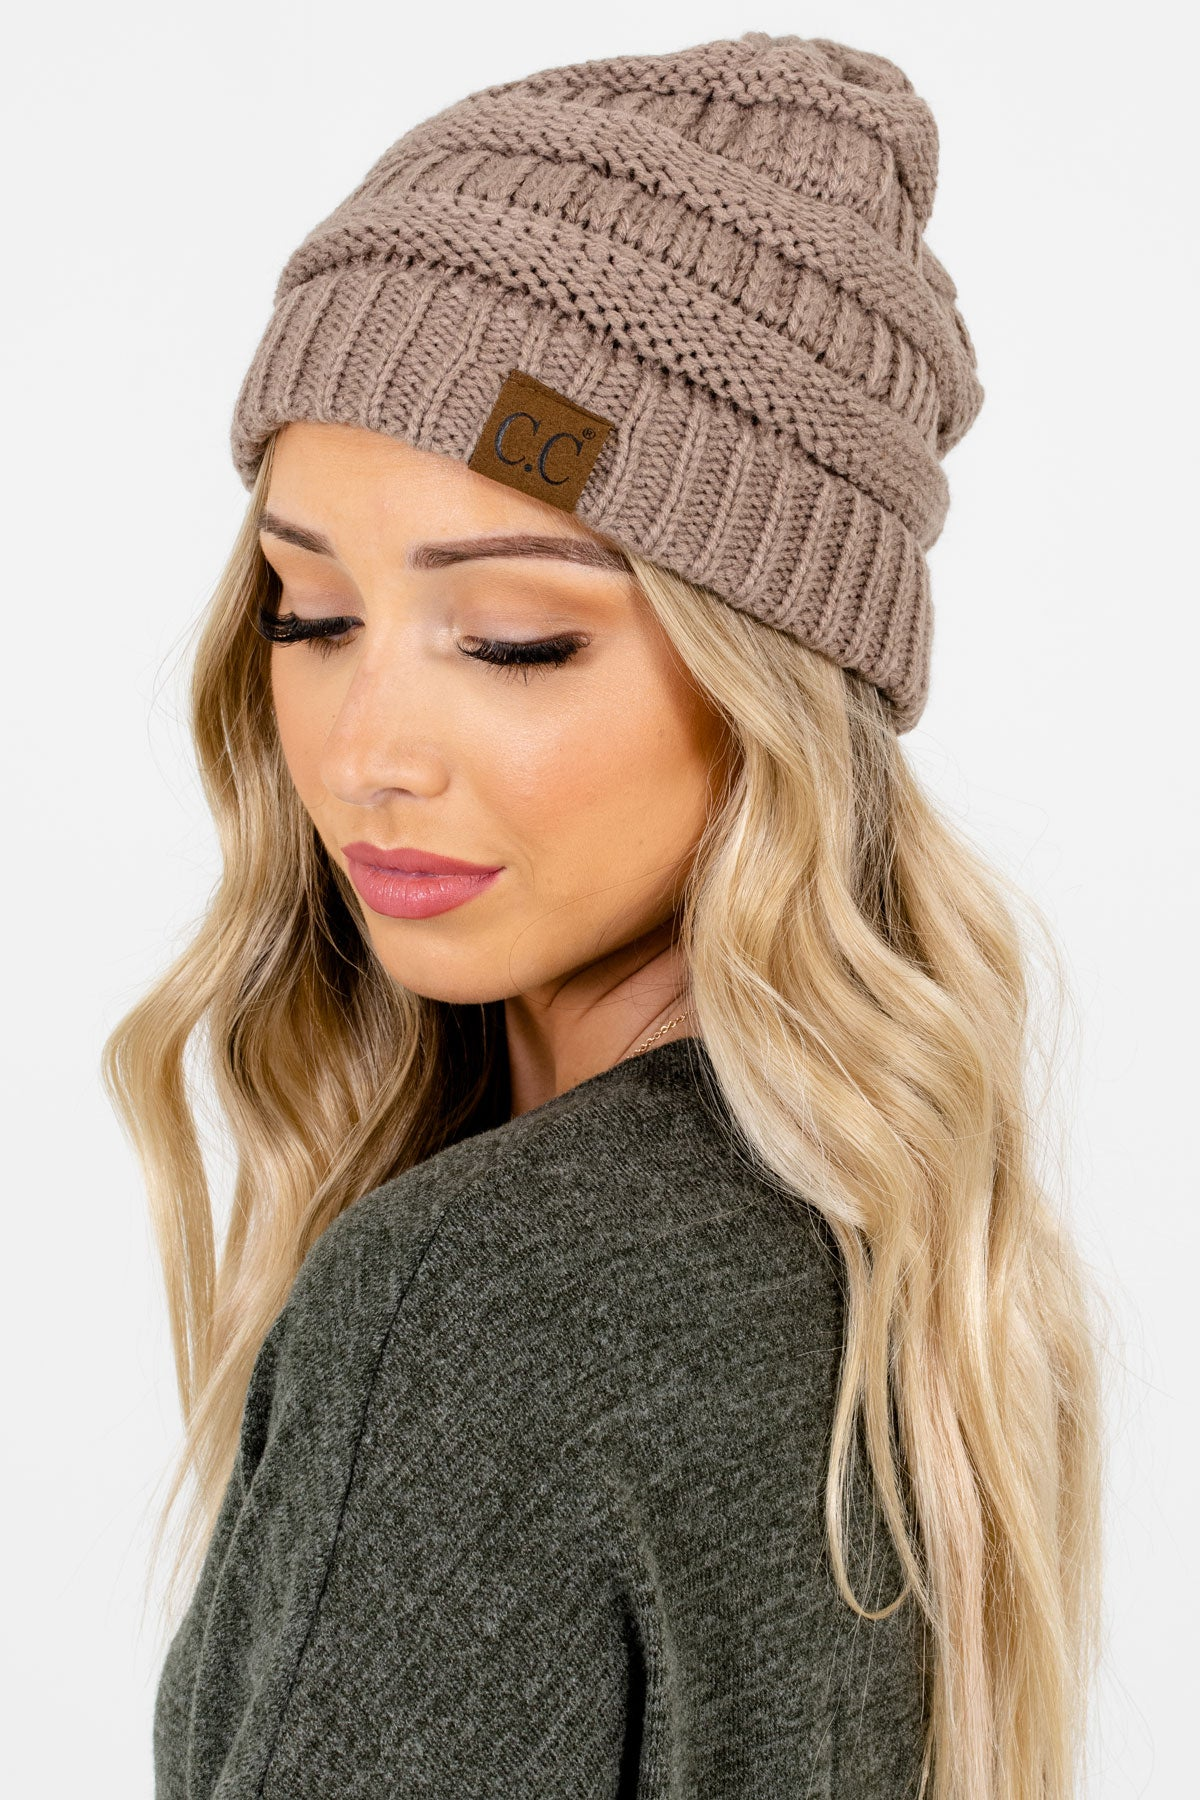 Taupe Brown High-Quality Knit Boutique Beanies for Women